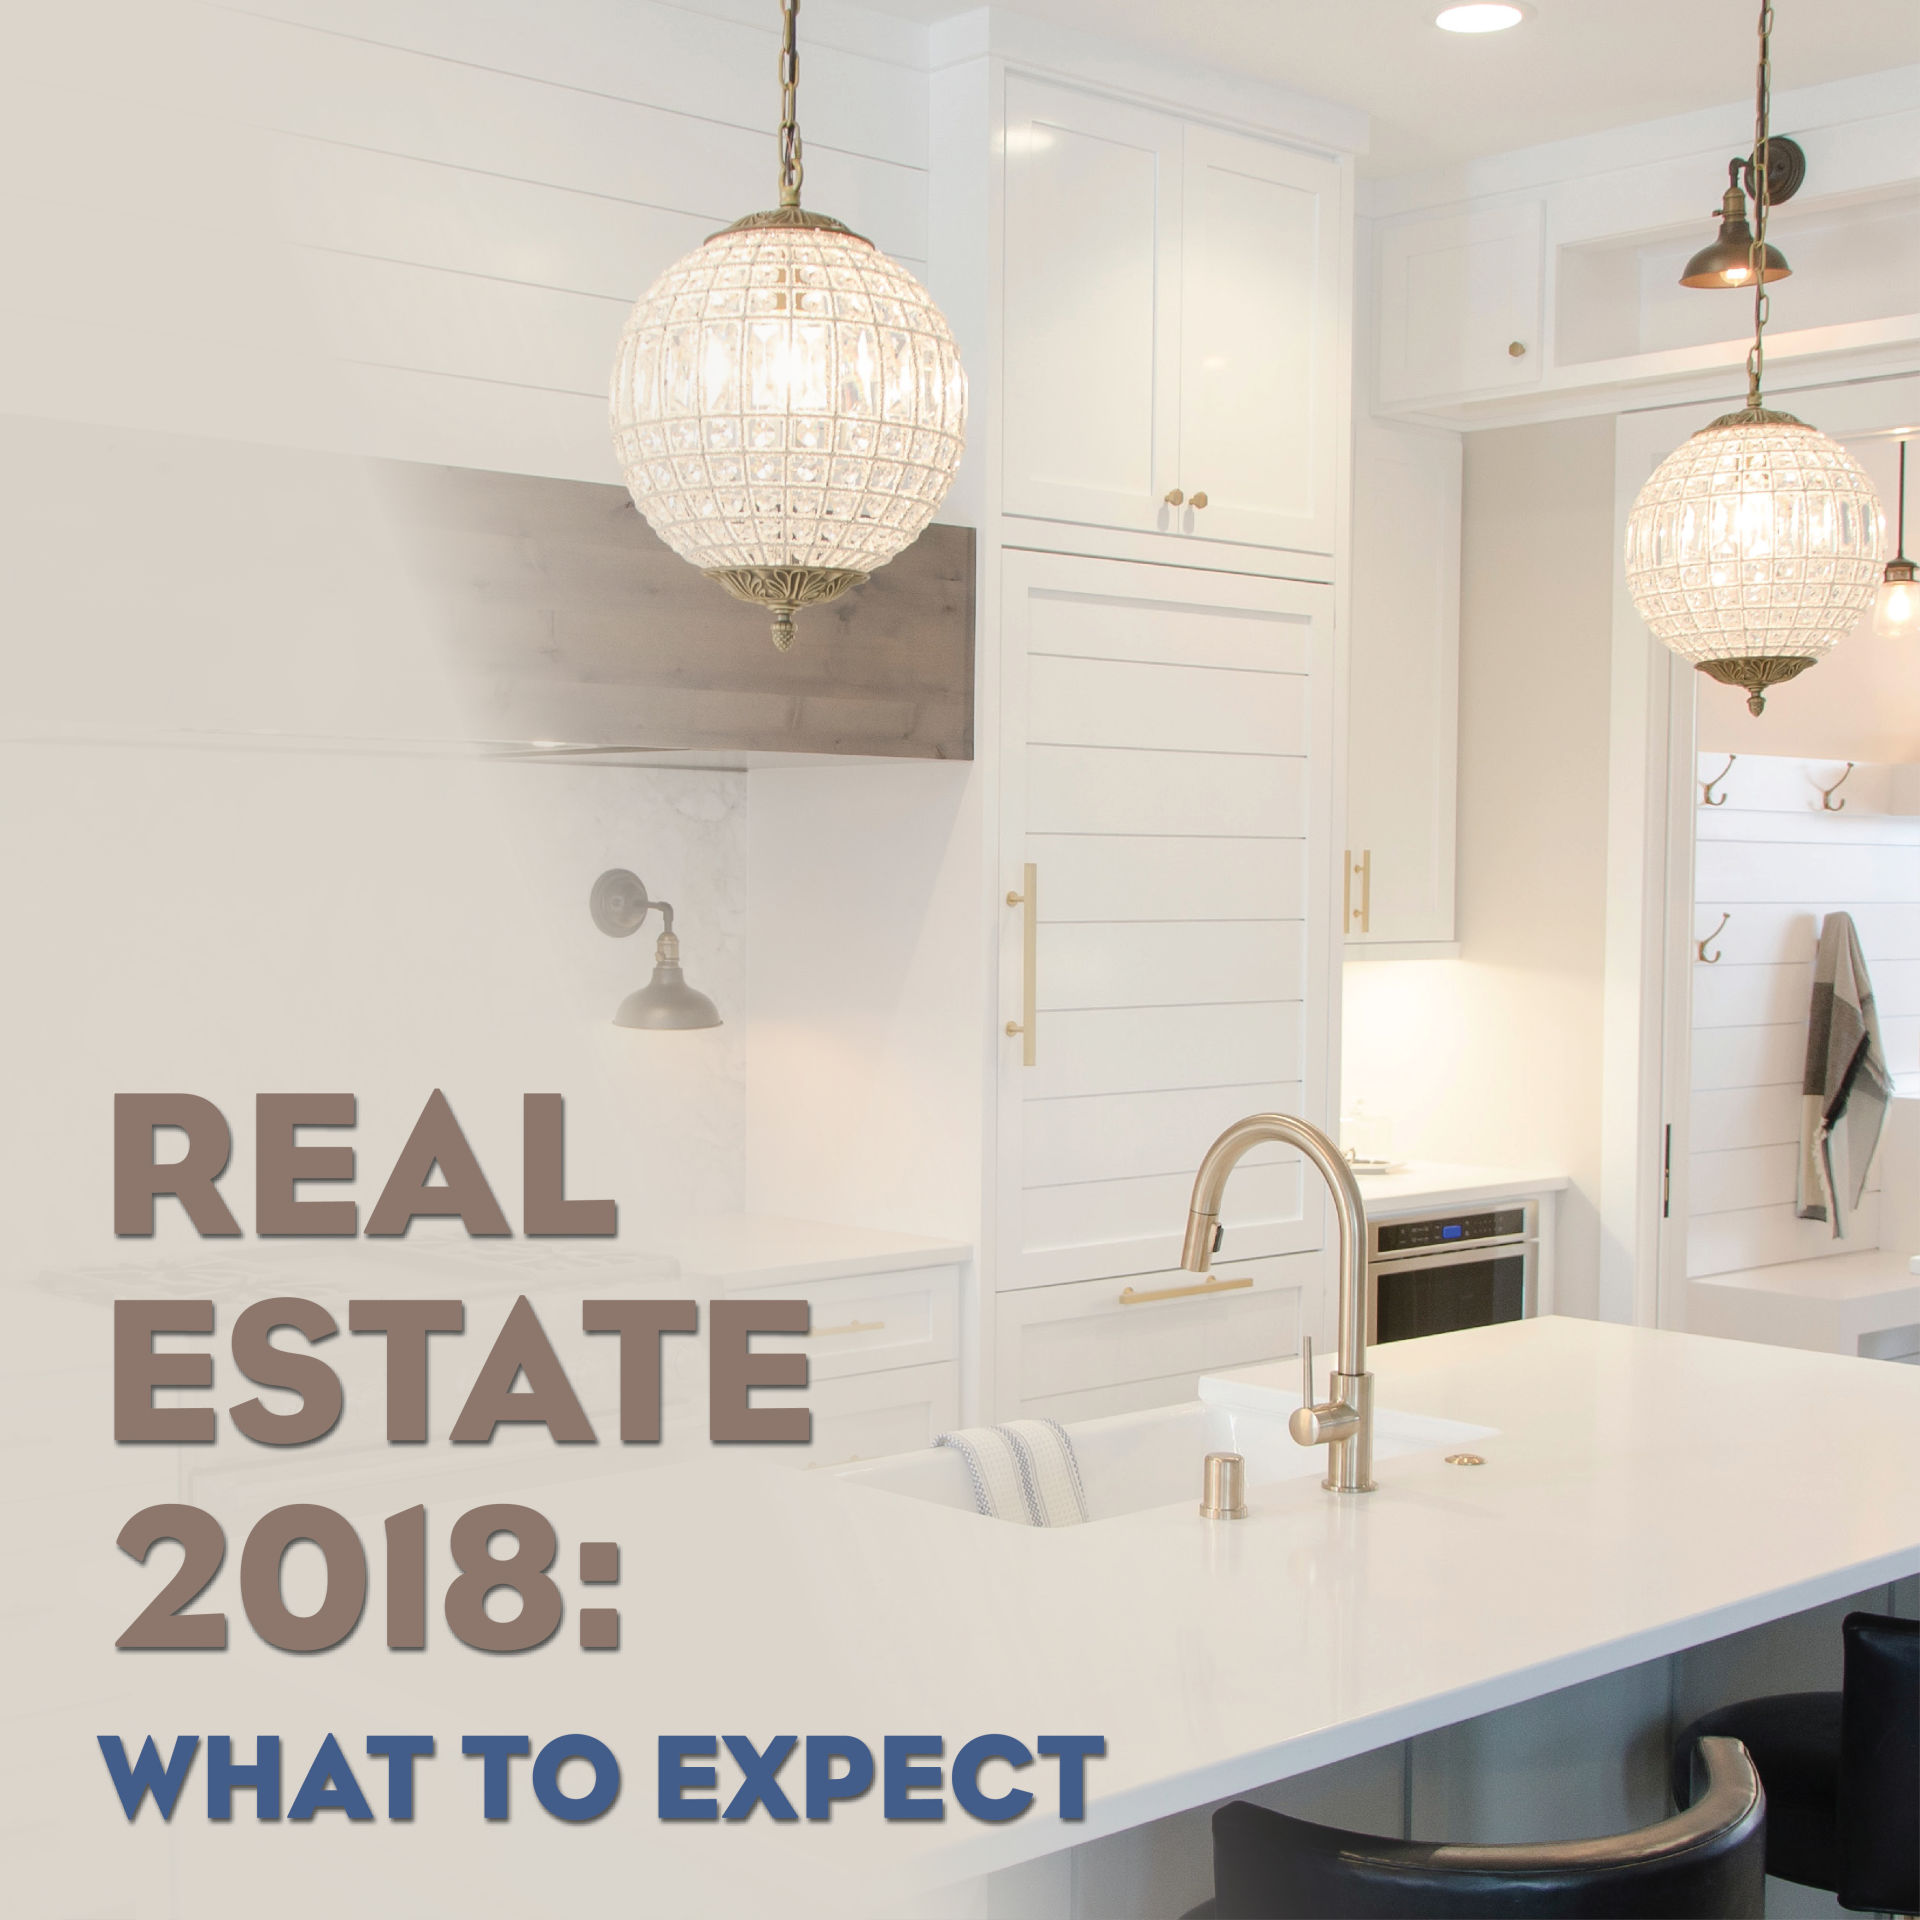 2018 Real Estate Forecast